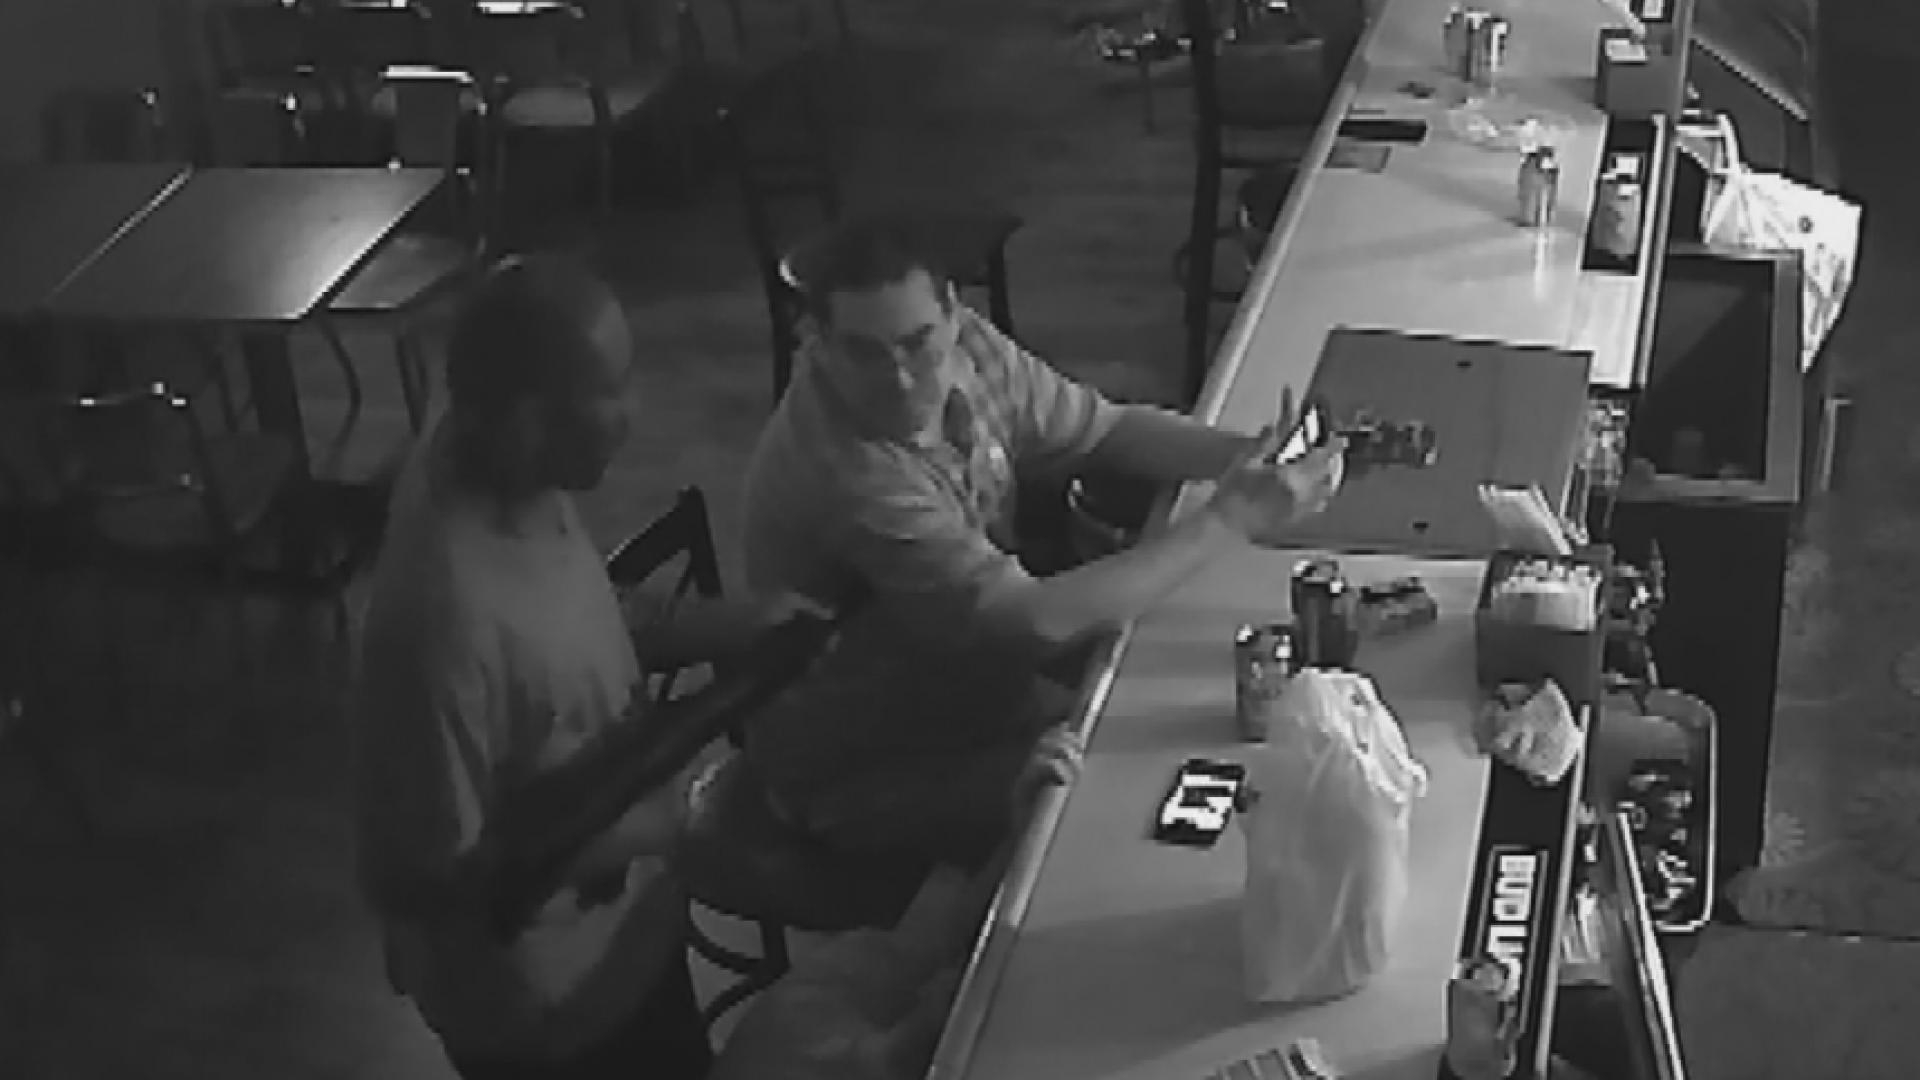 Video shows man refuse to give up phone during armed robbery